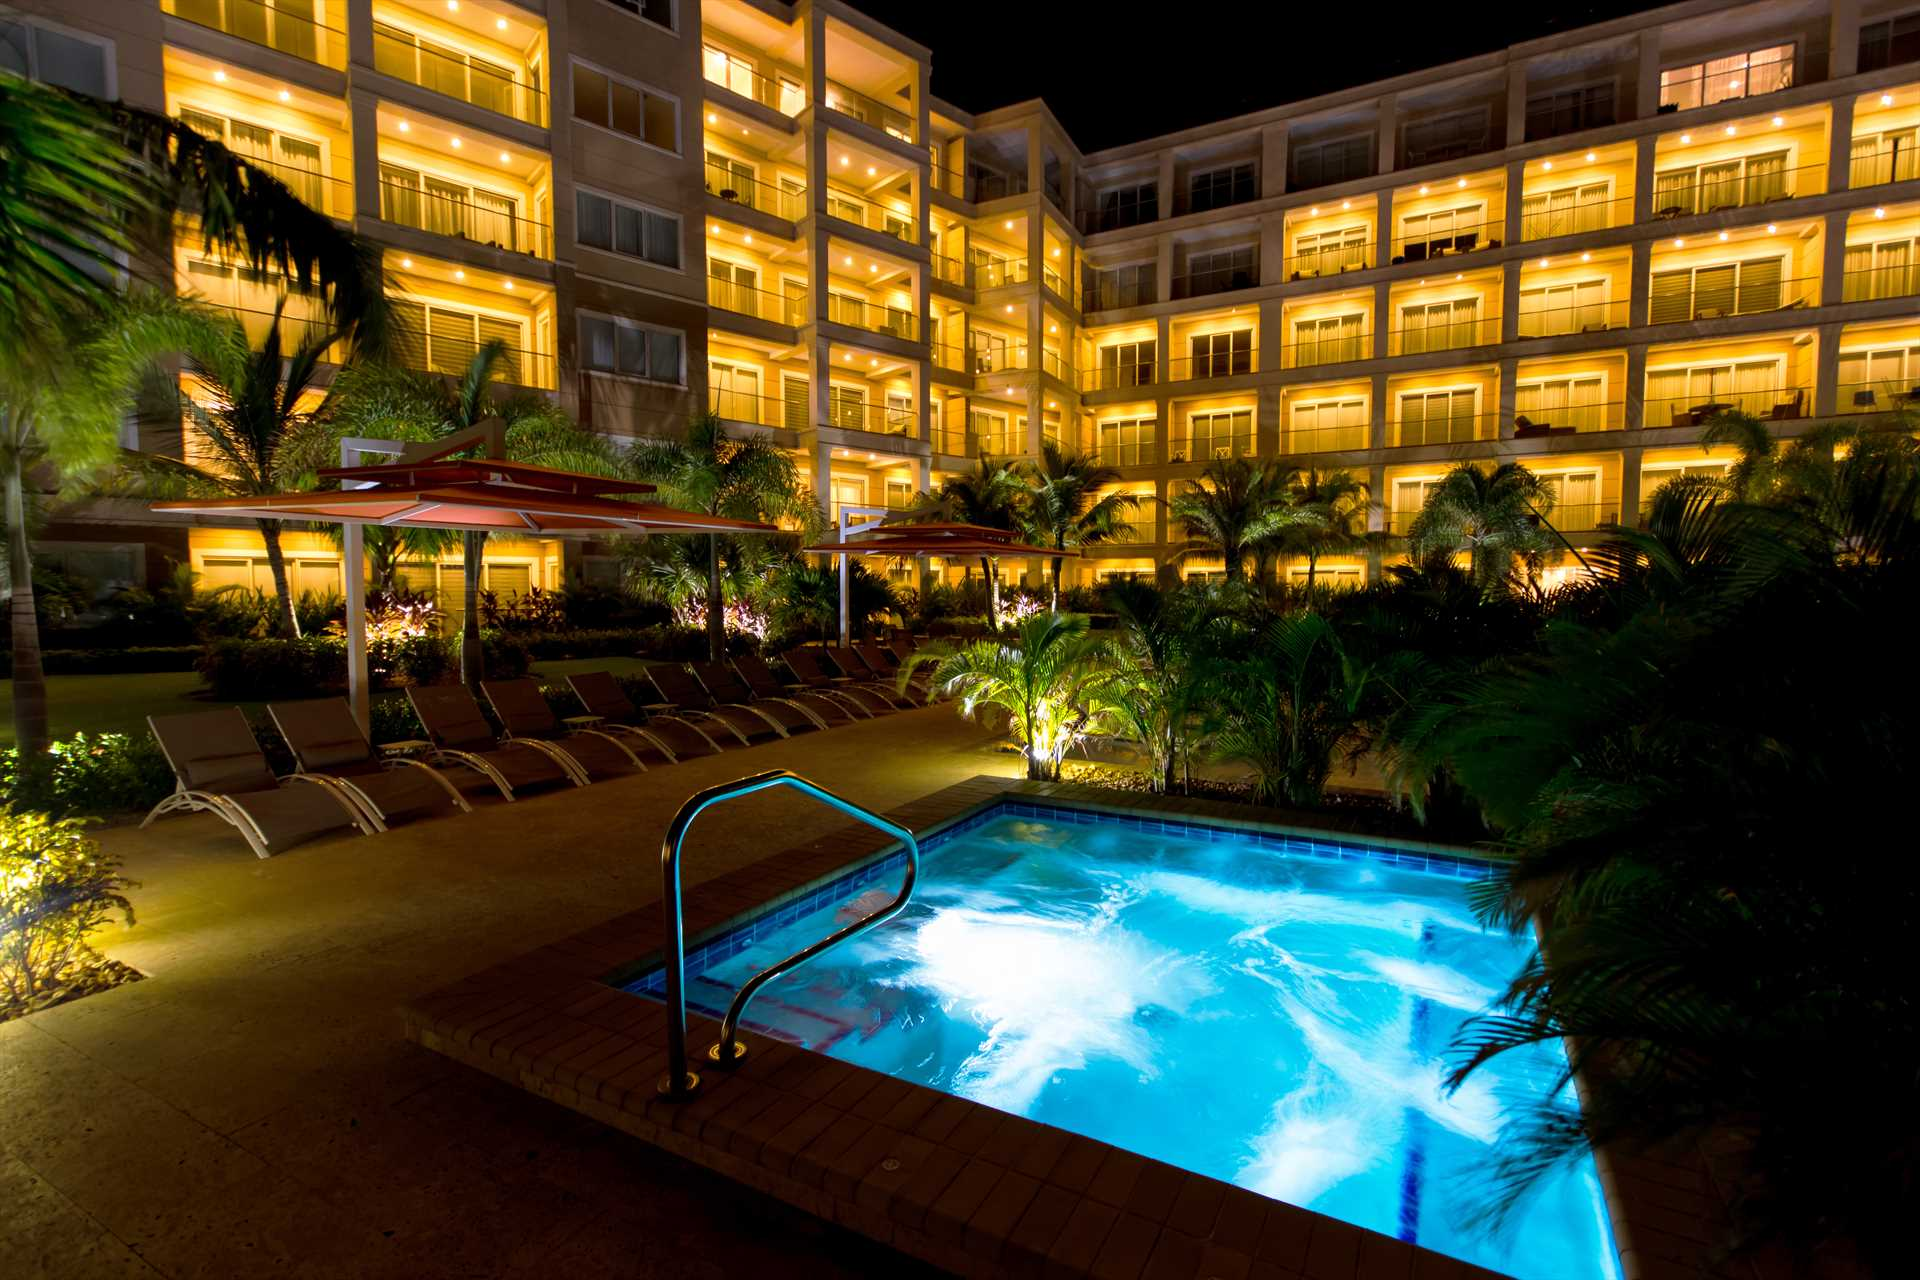 The LeVent resort un-heated Jacuzzi at night!